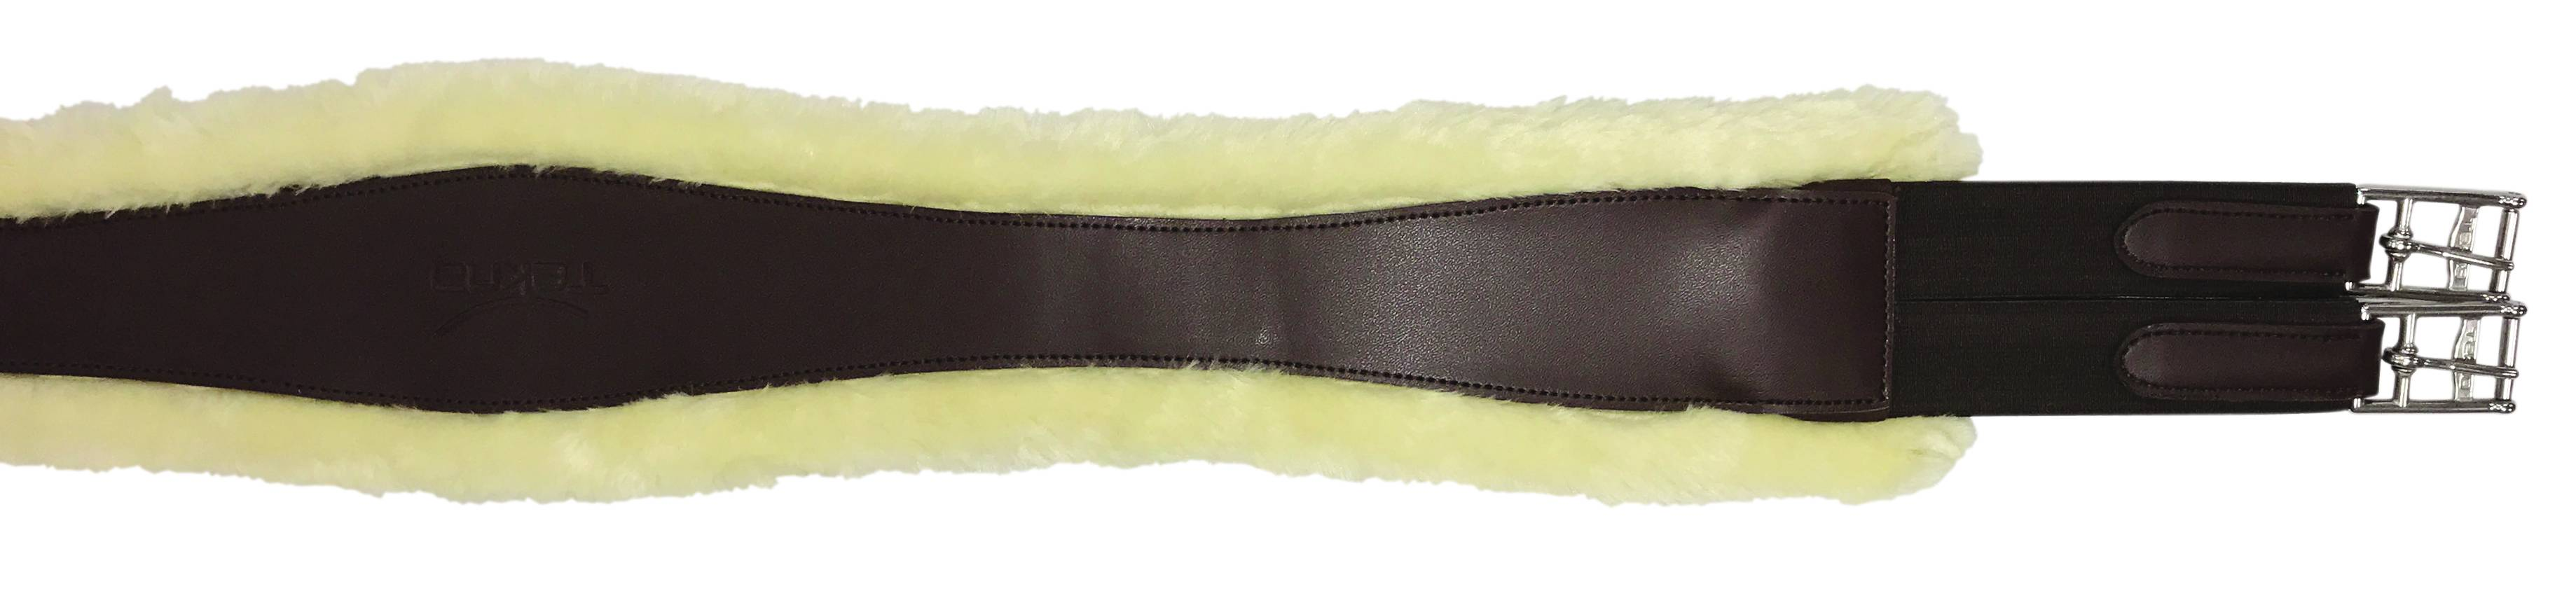 Tekna AP Shaped Synthetic Sheepskin Girth